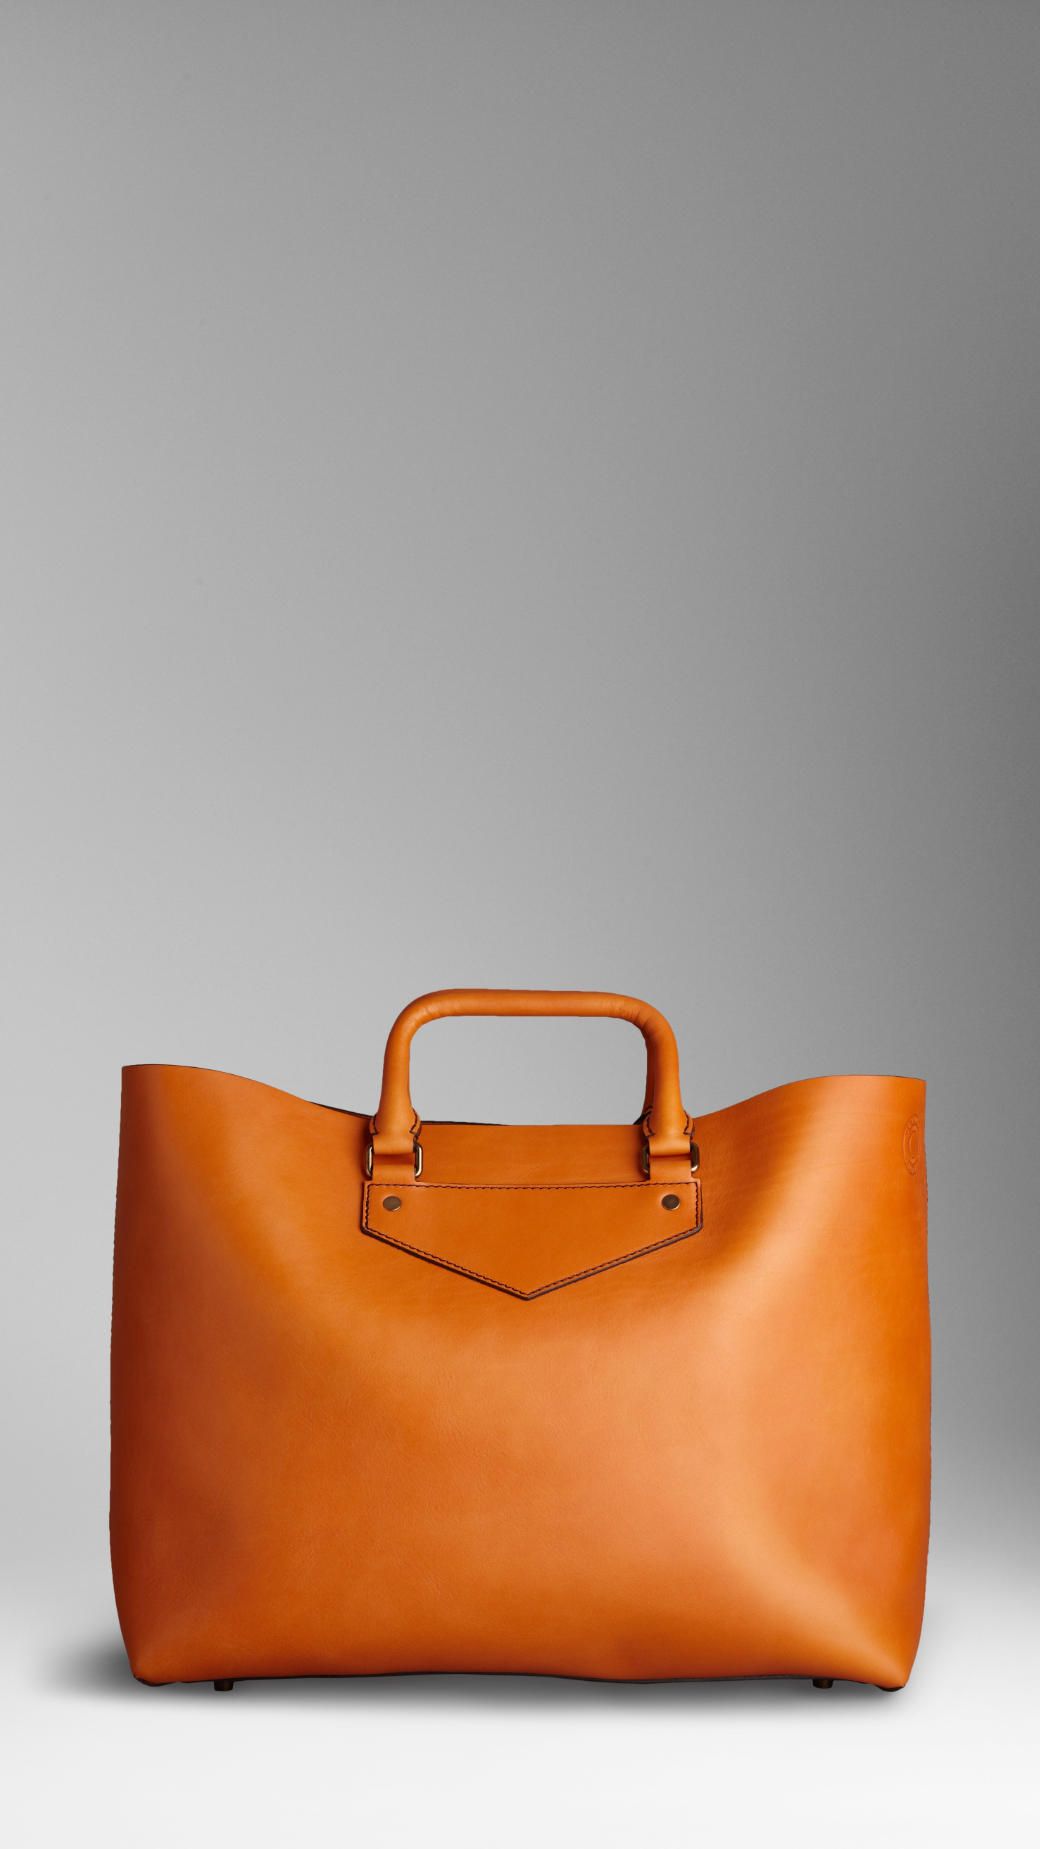 Burberry Large Leather Landscape Tote in Orange for Men - Lyst 24f084ddc1a25